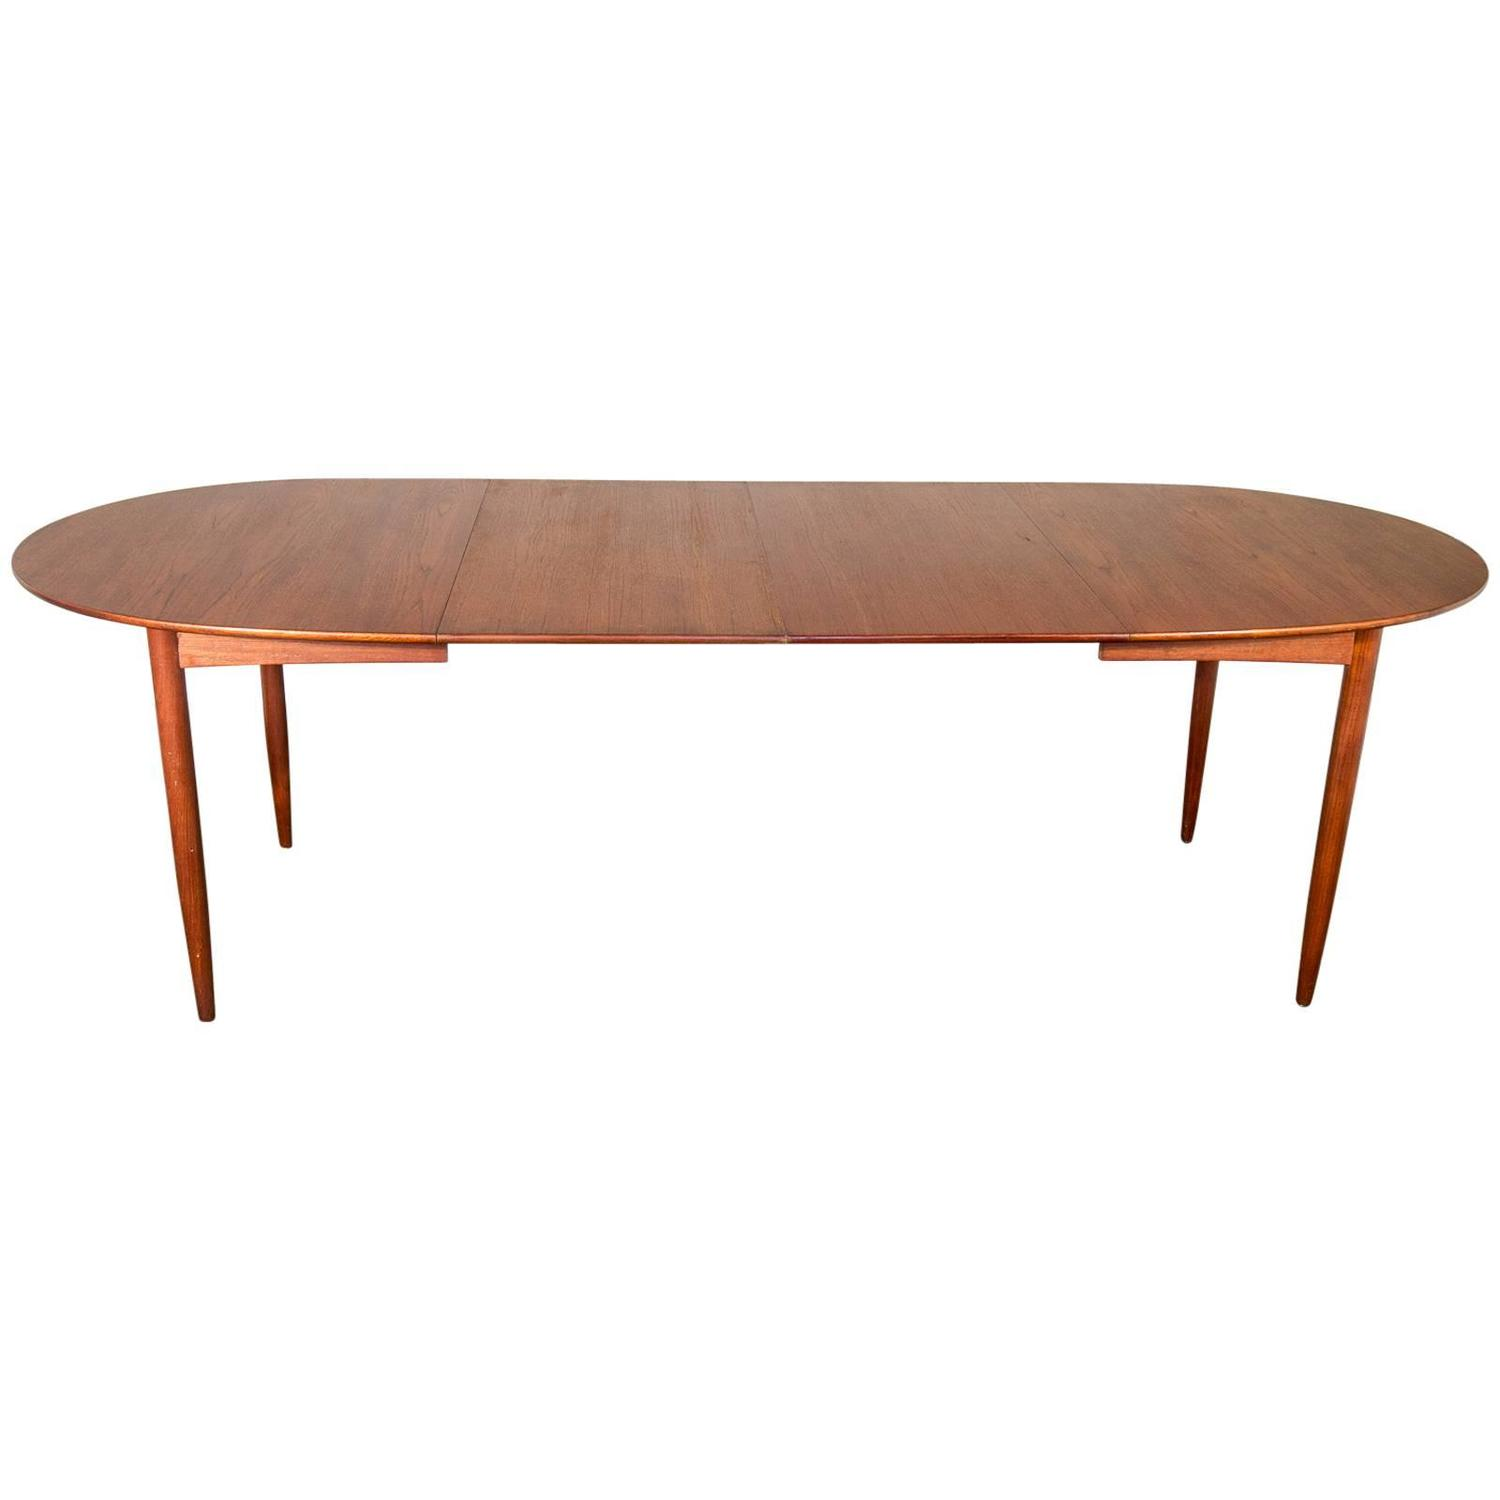 1950s Scandinavian Teak Dining Table at 1stdibs